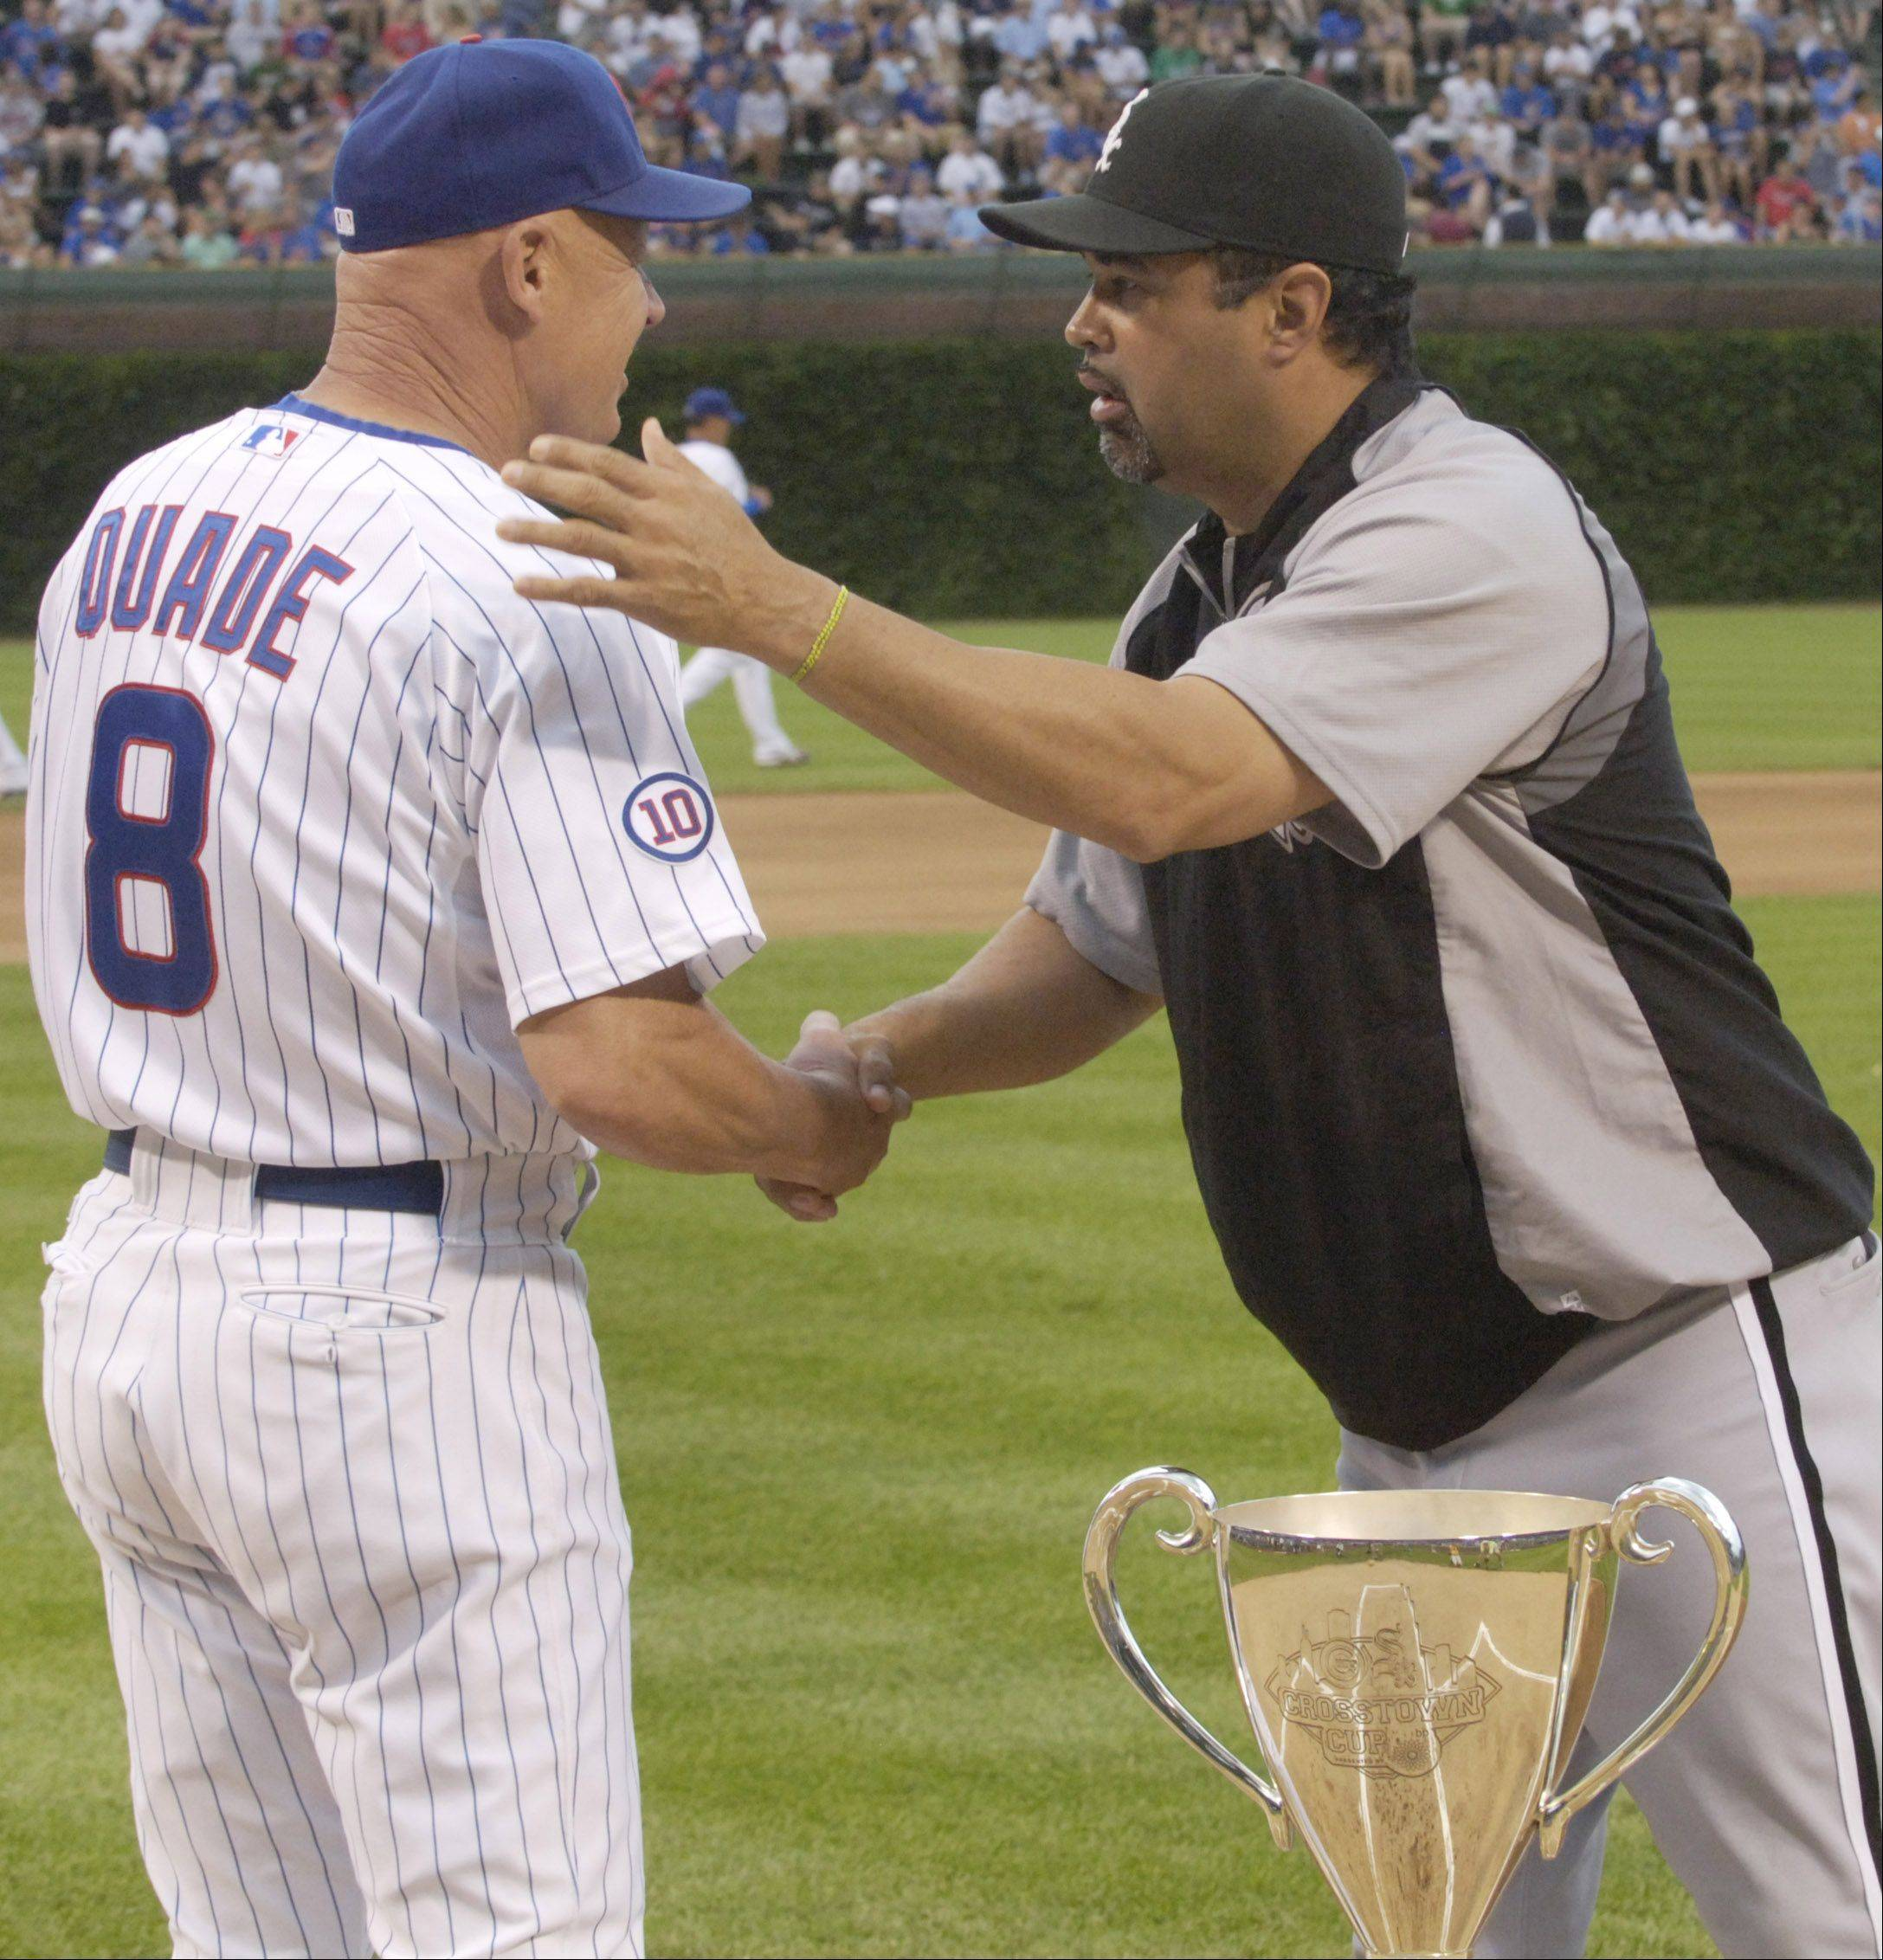 Cubs manager Mike Quade, left, and Sox manager Ozzie Guillen chat before Friday's at Wrigley Field.